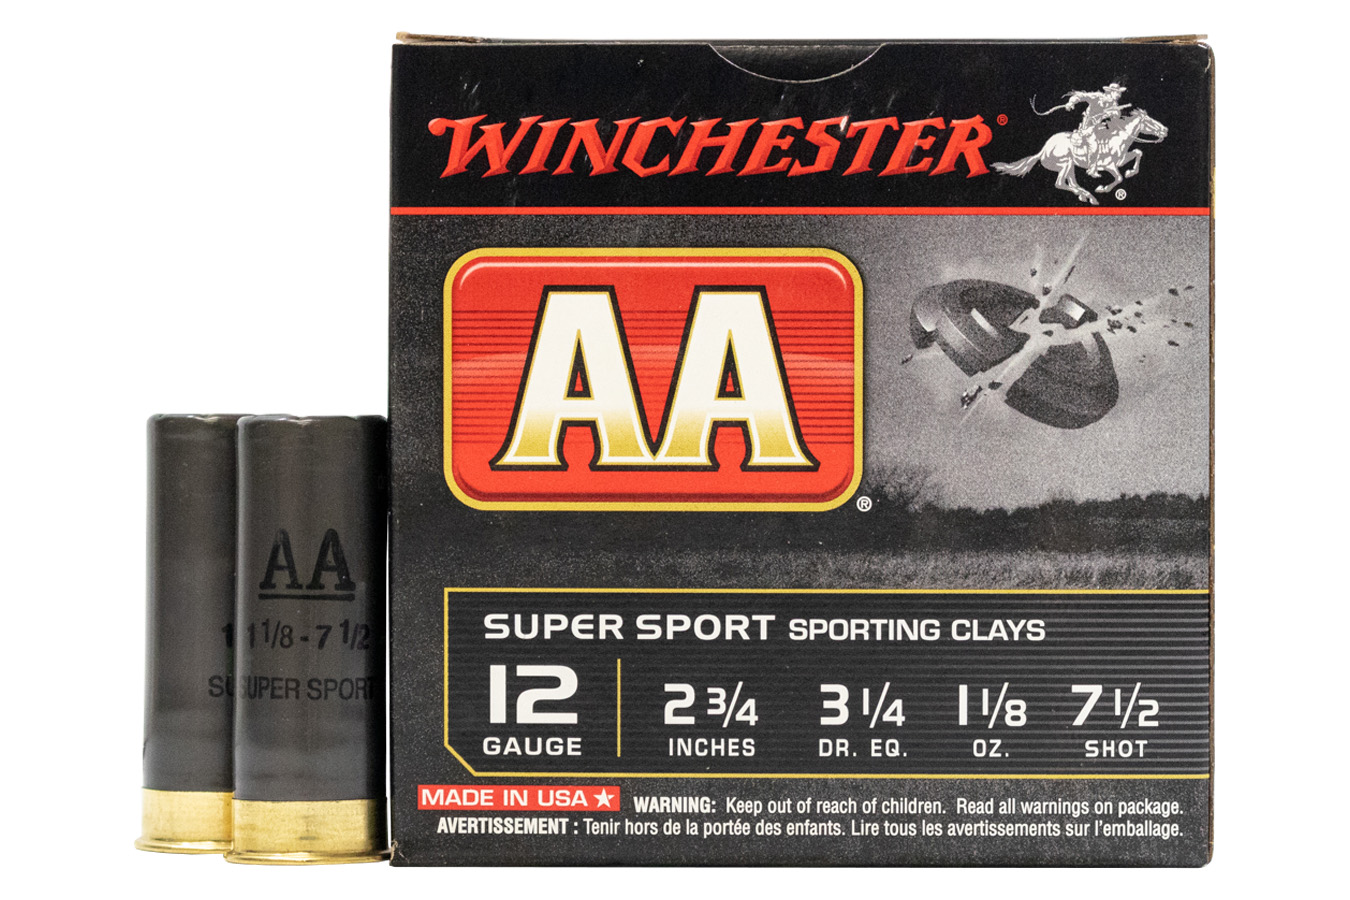 WINCHESTER AMMO 12 GAUGE 2-3/4 1300 3.25 1-1/8 SPORTING CLAYS